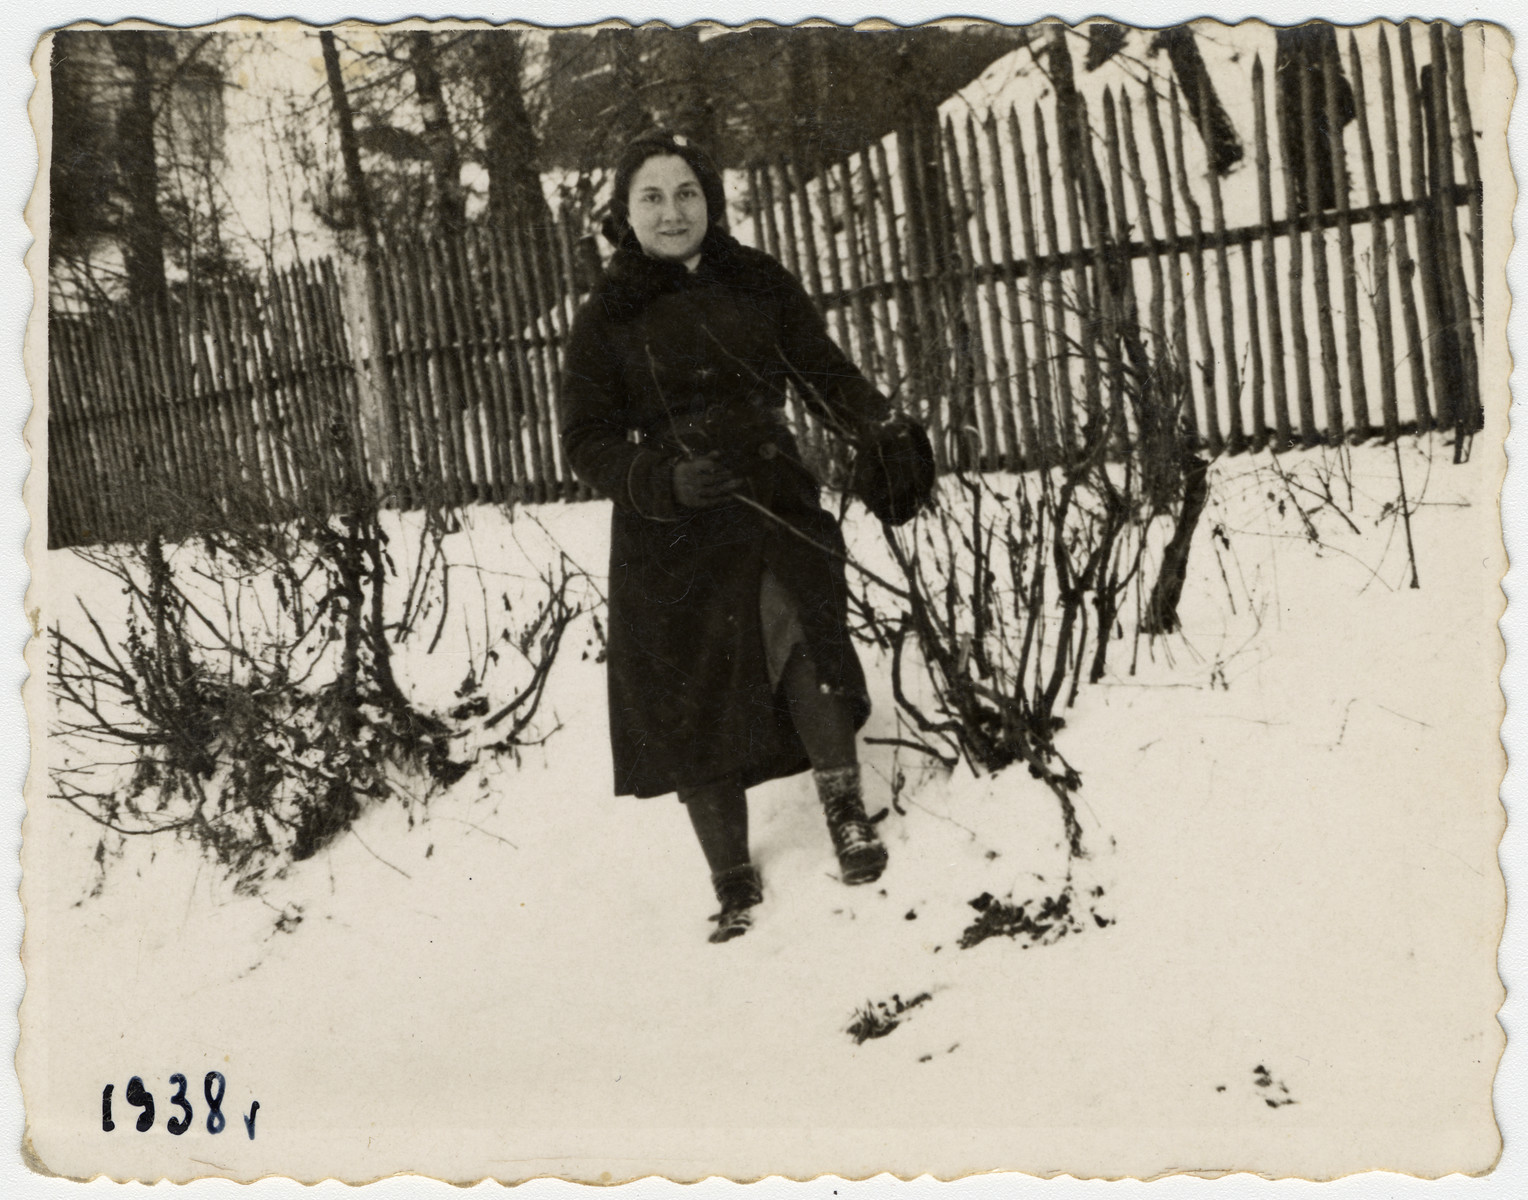 Sonia Boldo (later Bielski) poses in front of a fence in the snow.  Sonia escaped from the Nowogrodek ghetto in 1942 and came to the forest.  There she met and married Zus Bielski.